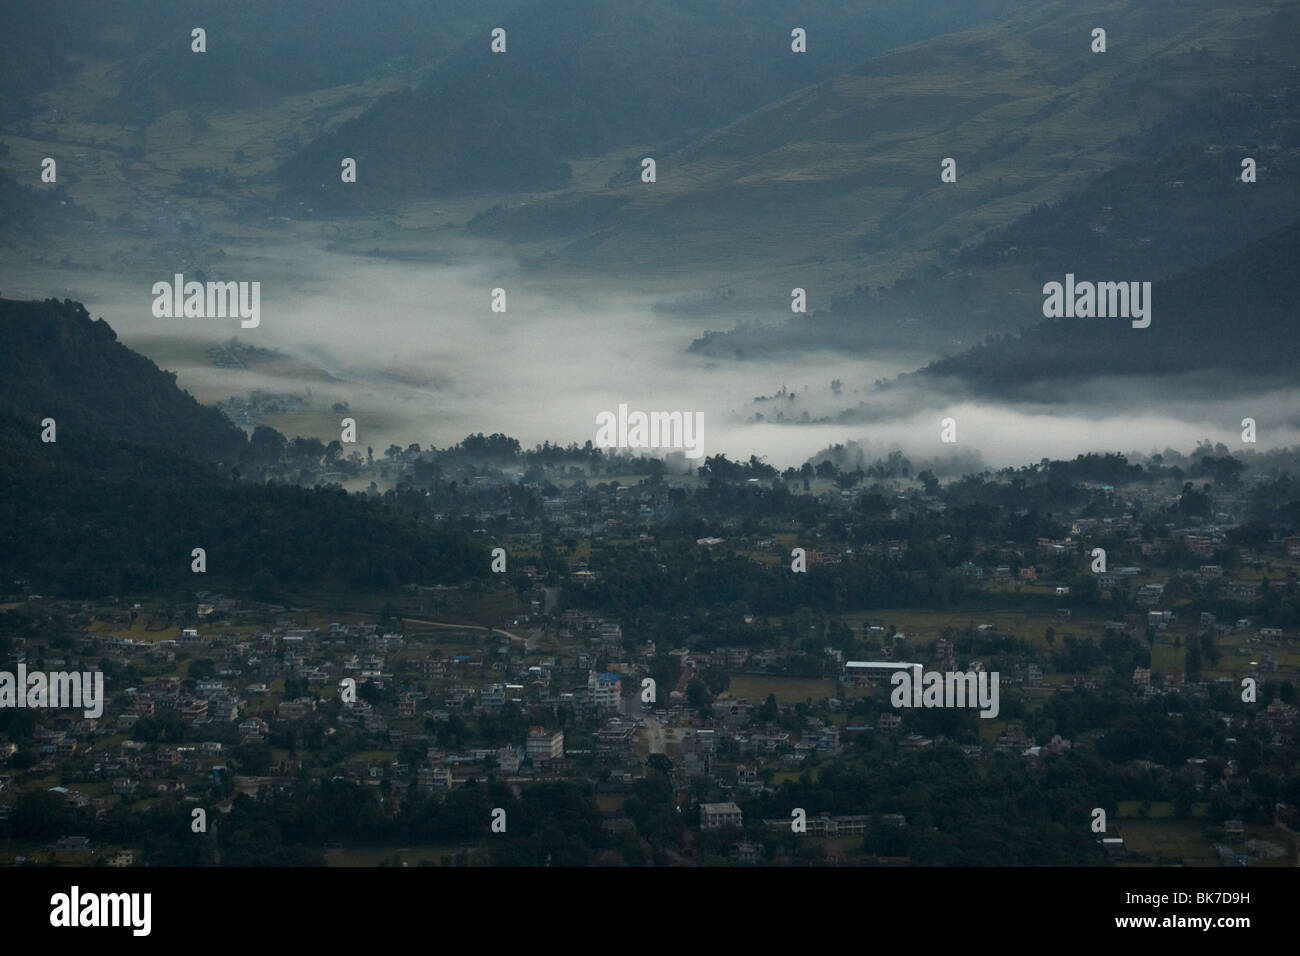 Morning mist covers the valley floor near Pokhara, Nepal on Tuesday October 27, 2009. - Stock Image